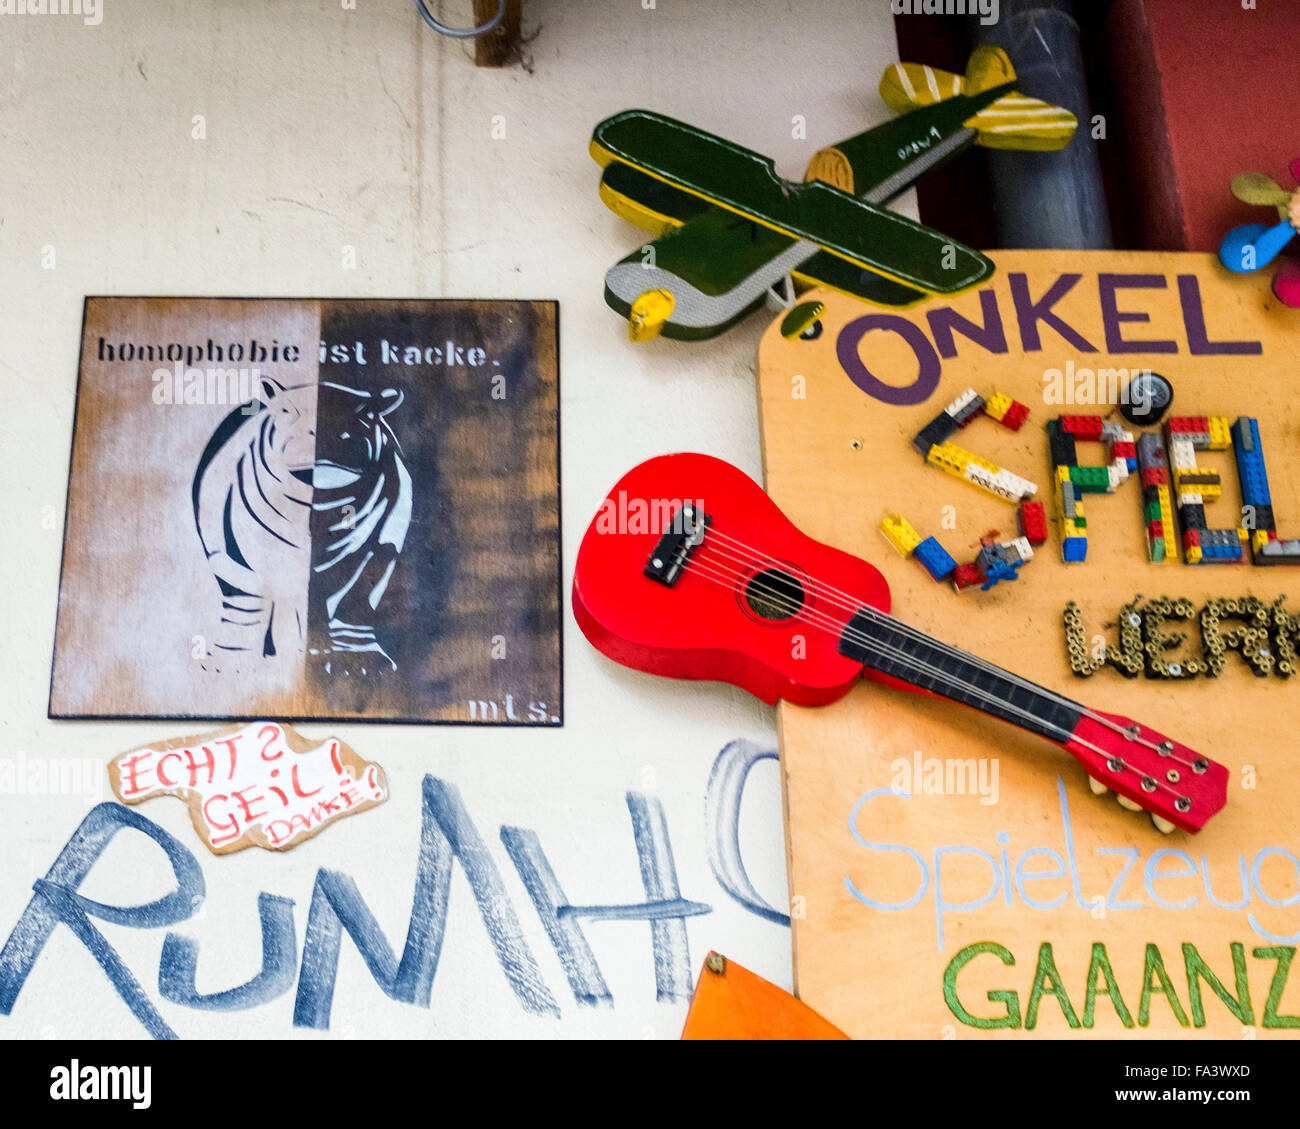 'Homophobic ist kacke' poster and toy display outside Berlin shop - Stock Image